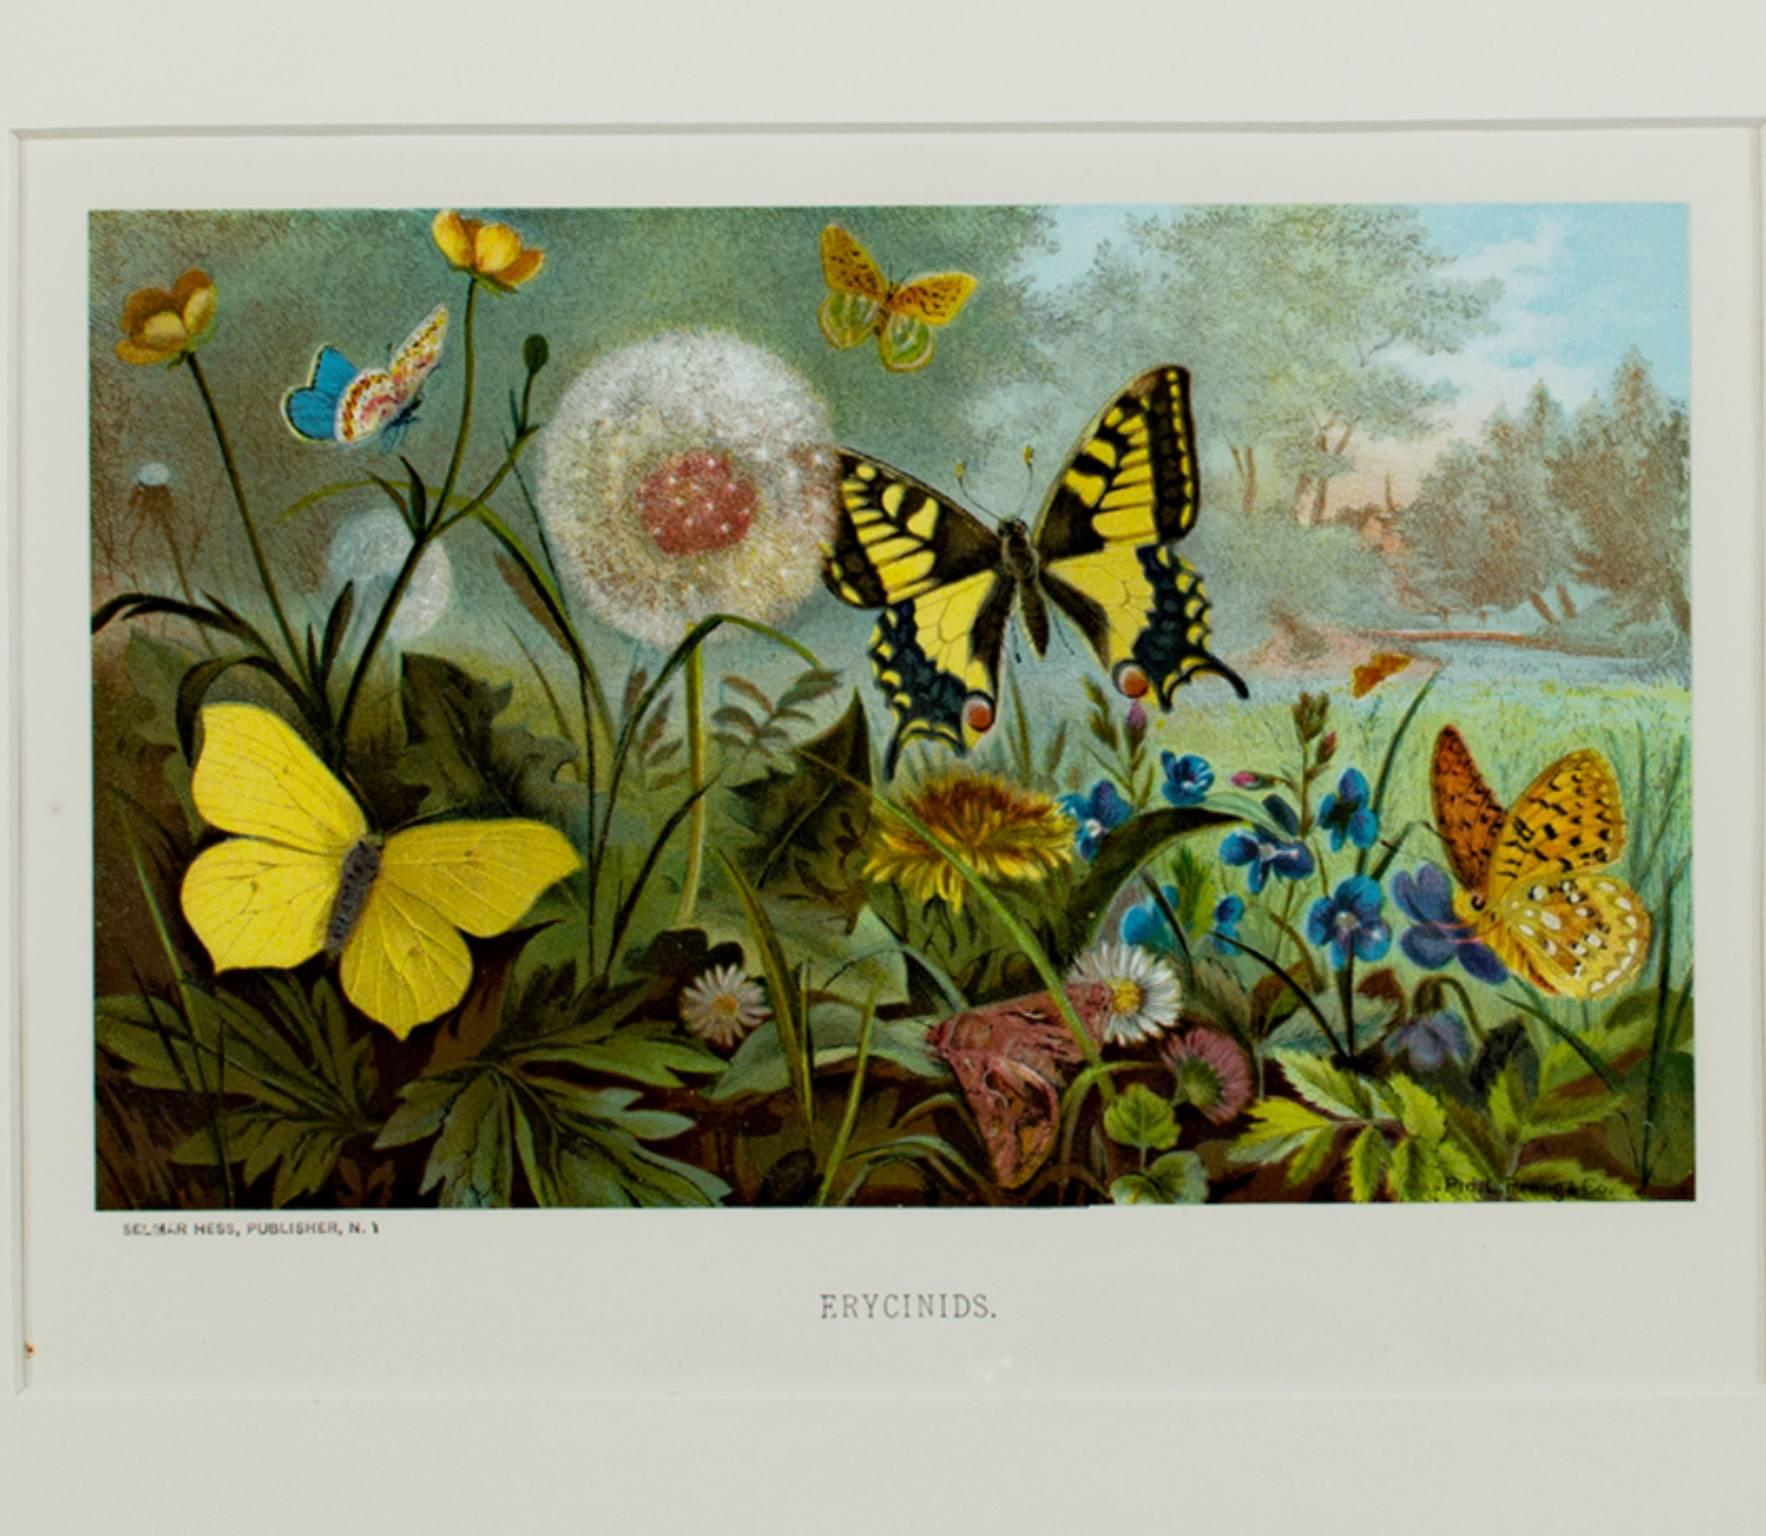 """""""Erycinids,"""" an Original Color Lithograph signed by Louis Prang"""